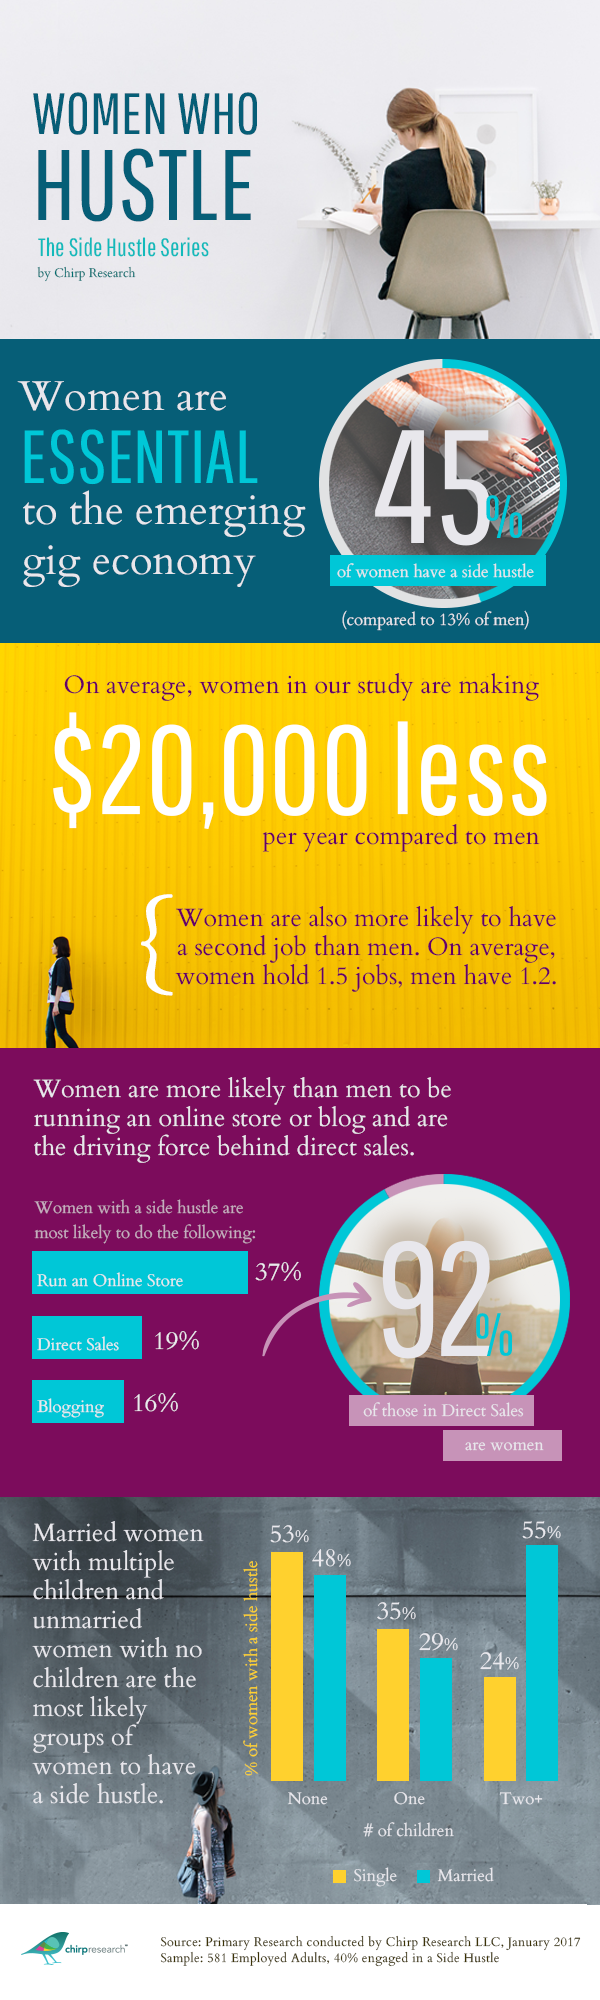 Women Who Hustle - The Side Hustle by Chirp Research